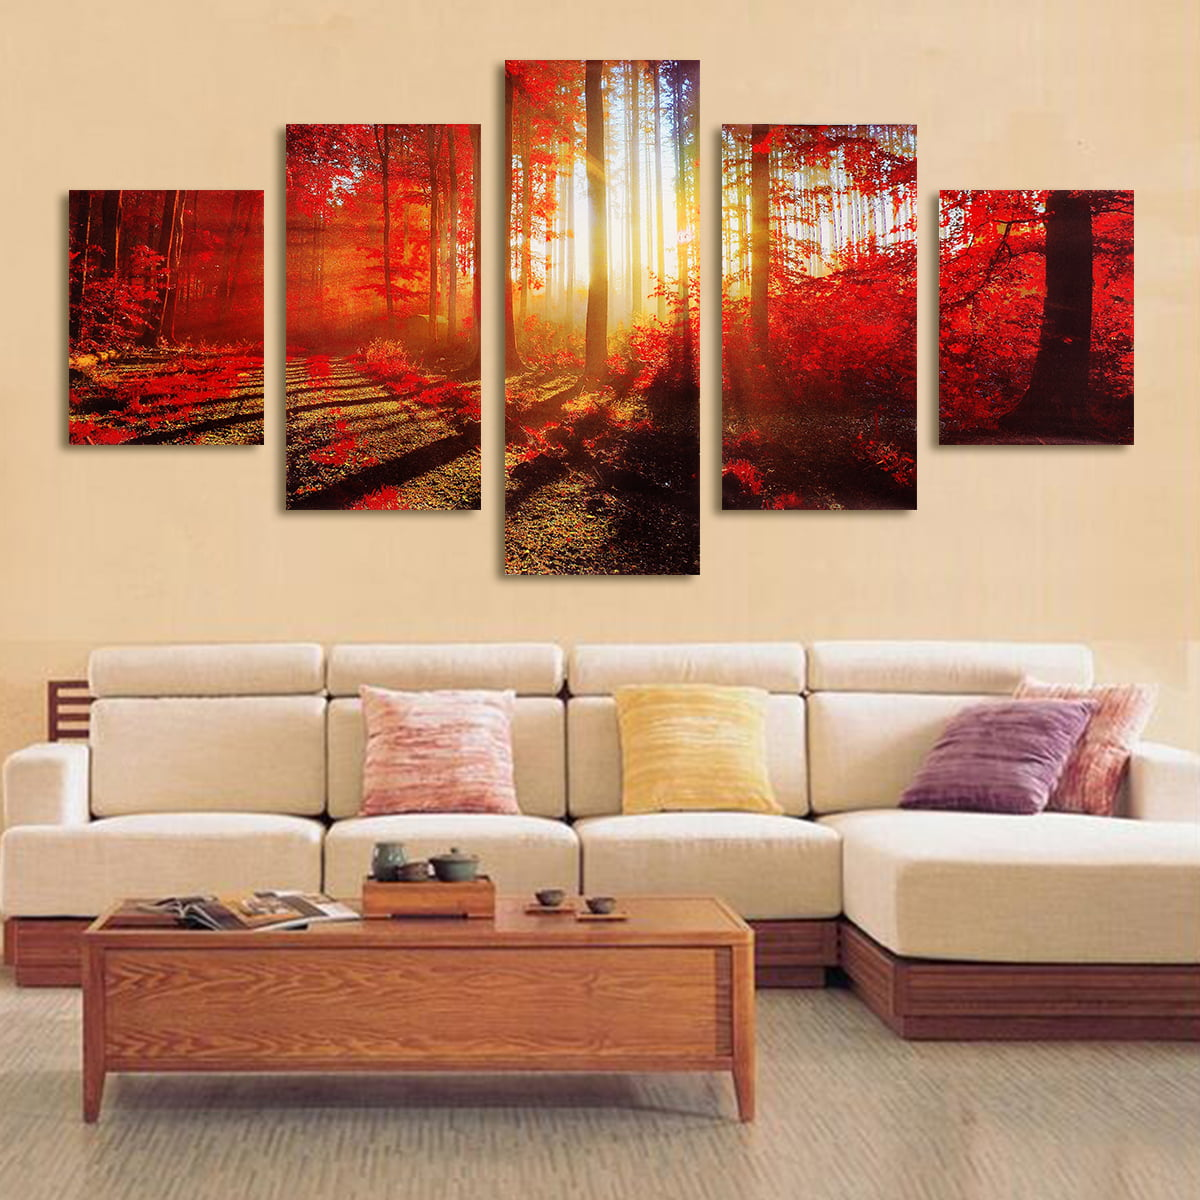 5PCS Modern Art Oil Paintings Canvas Print Unframed Pictures Home Wall Sticker Decor by